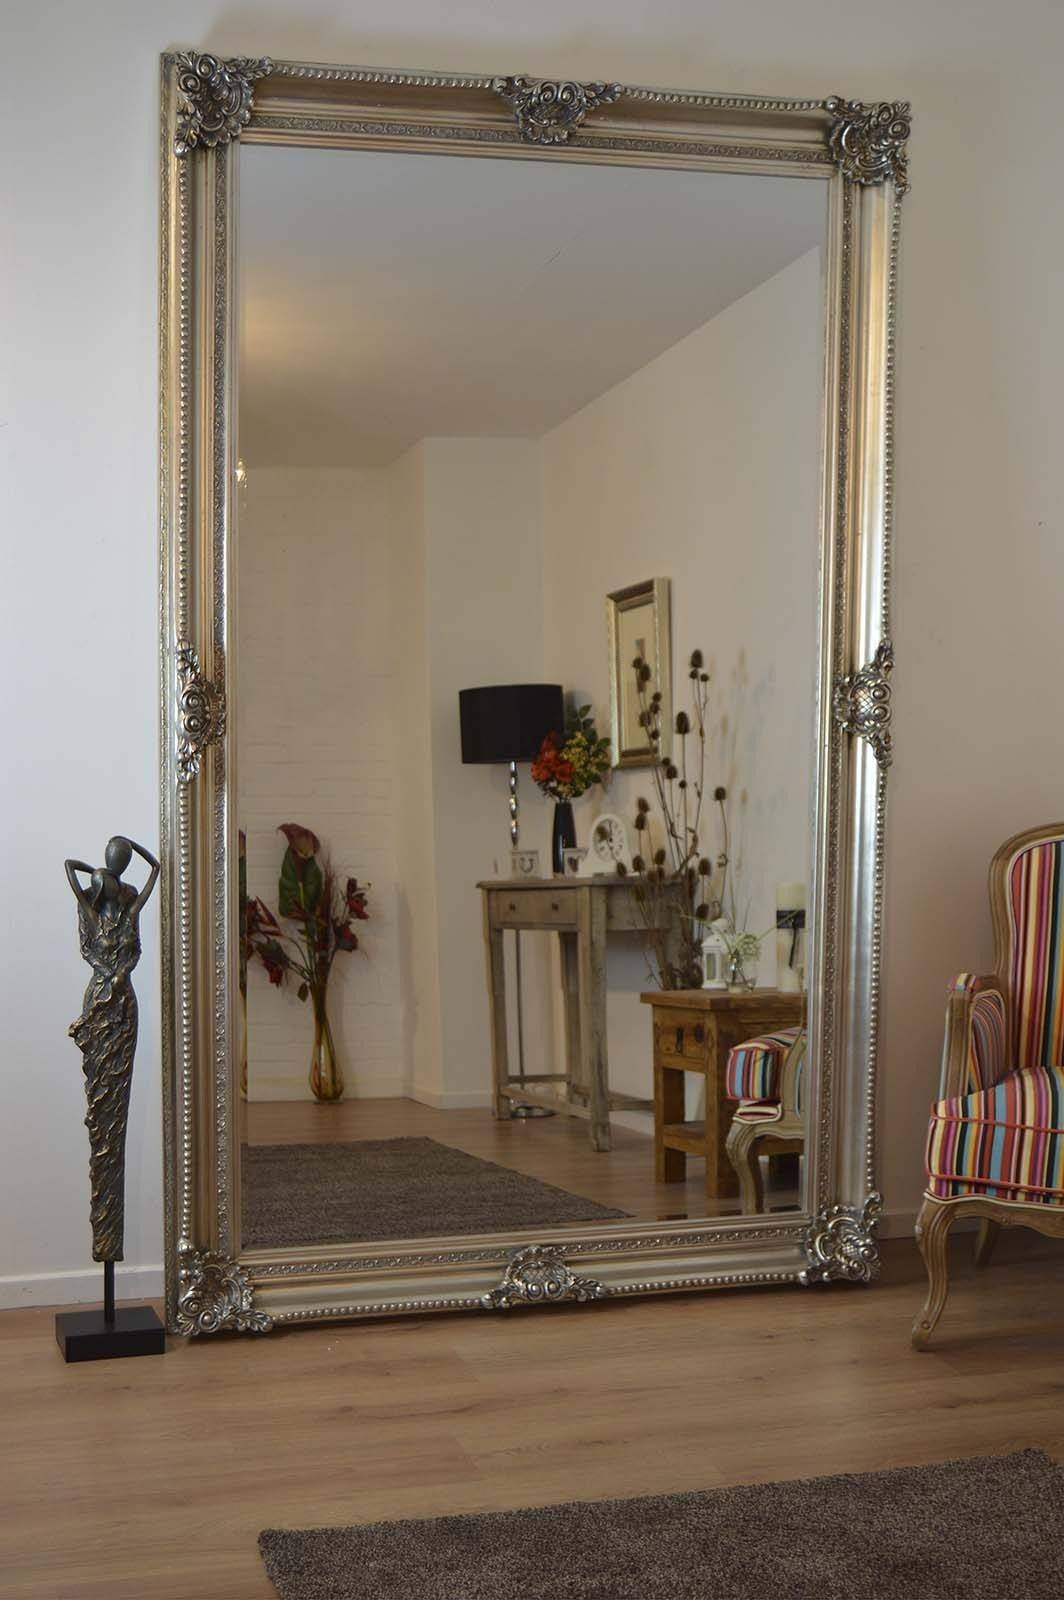 Extra Large Wall Mirrors 143 Stunning Decor With Oversized Mirrors pertaining to Oversized Mirrors (Image 6 of 15)